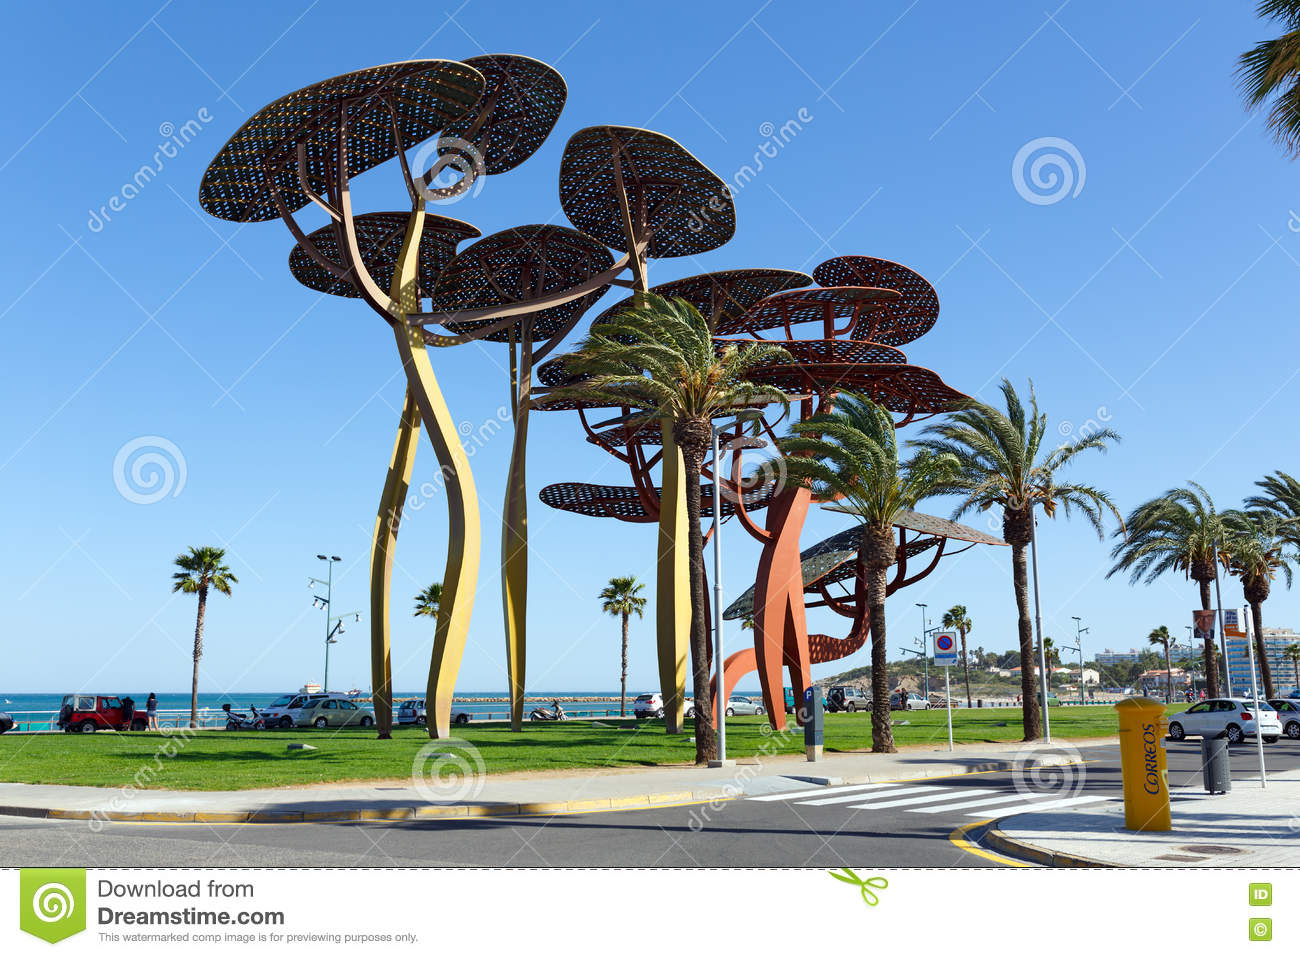 the pine tree sculpture on the seafront promenade in la pineda spain editorial stock photo. Black Bedroom Furniture Sets. Home Design Ideas